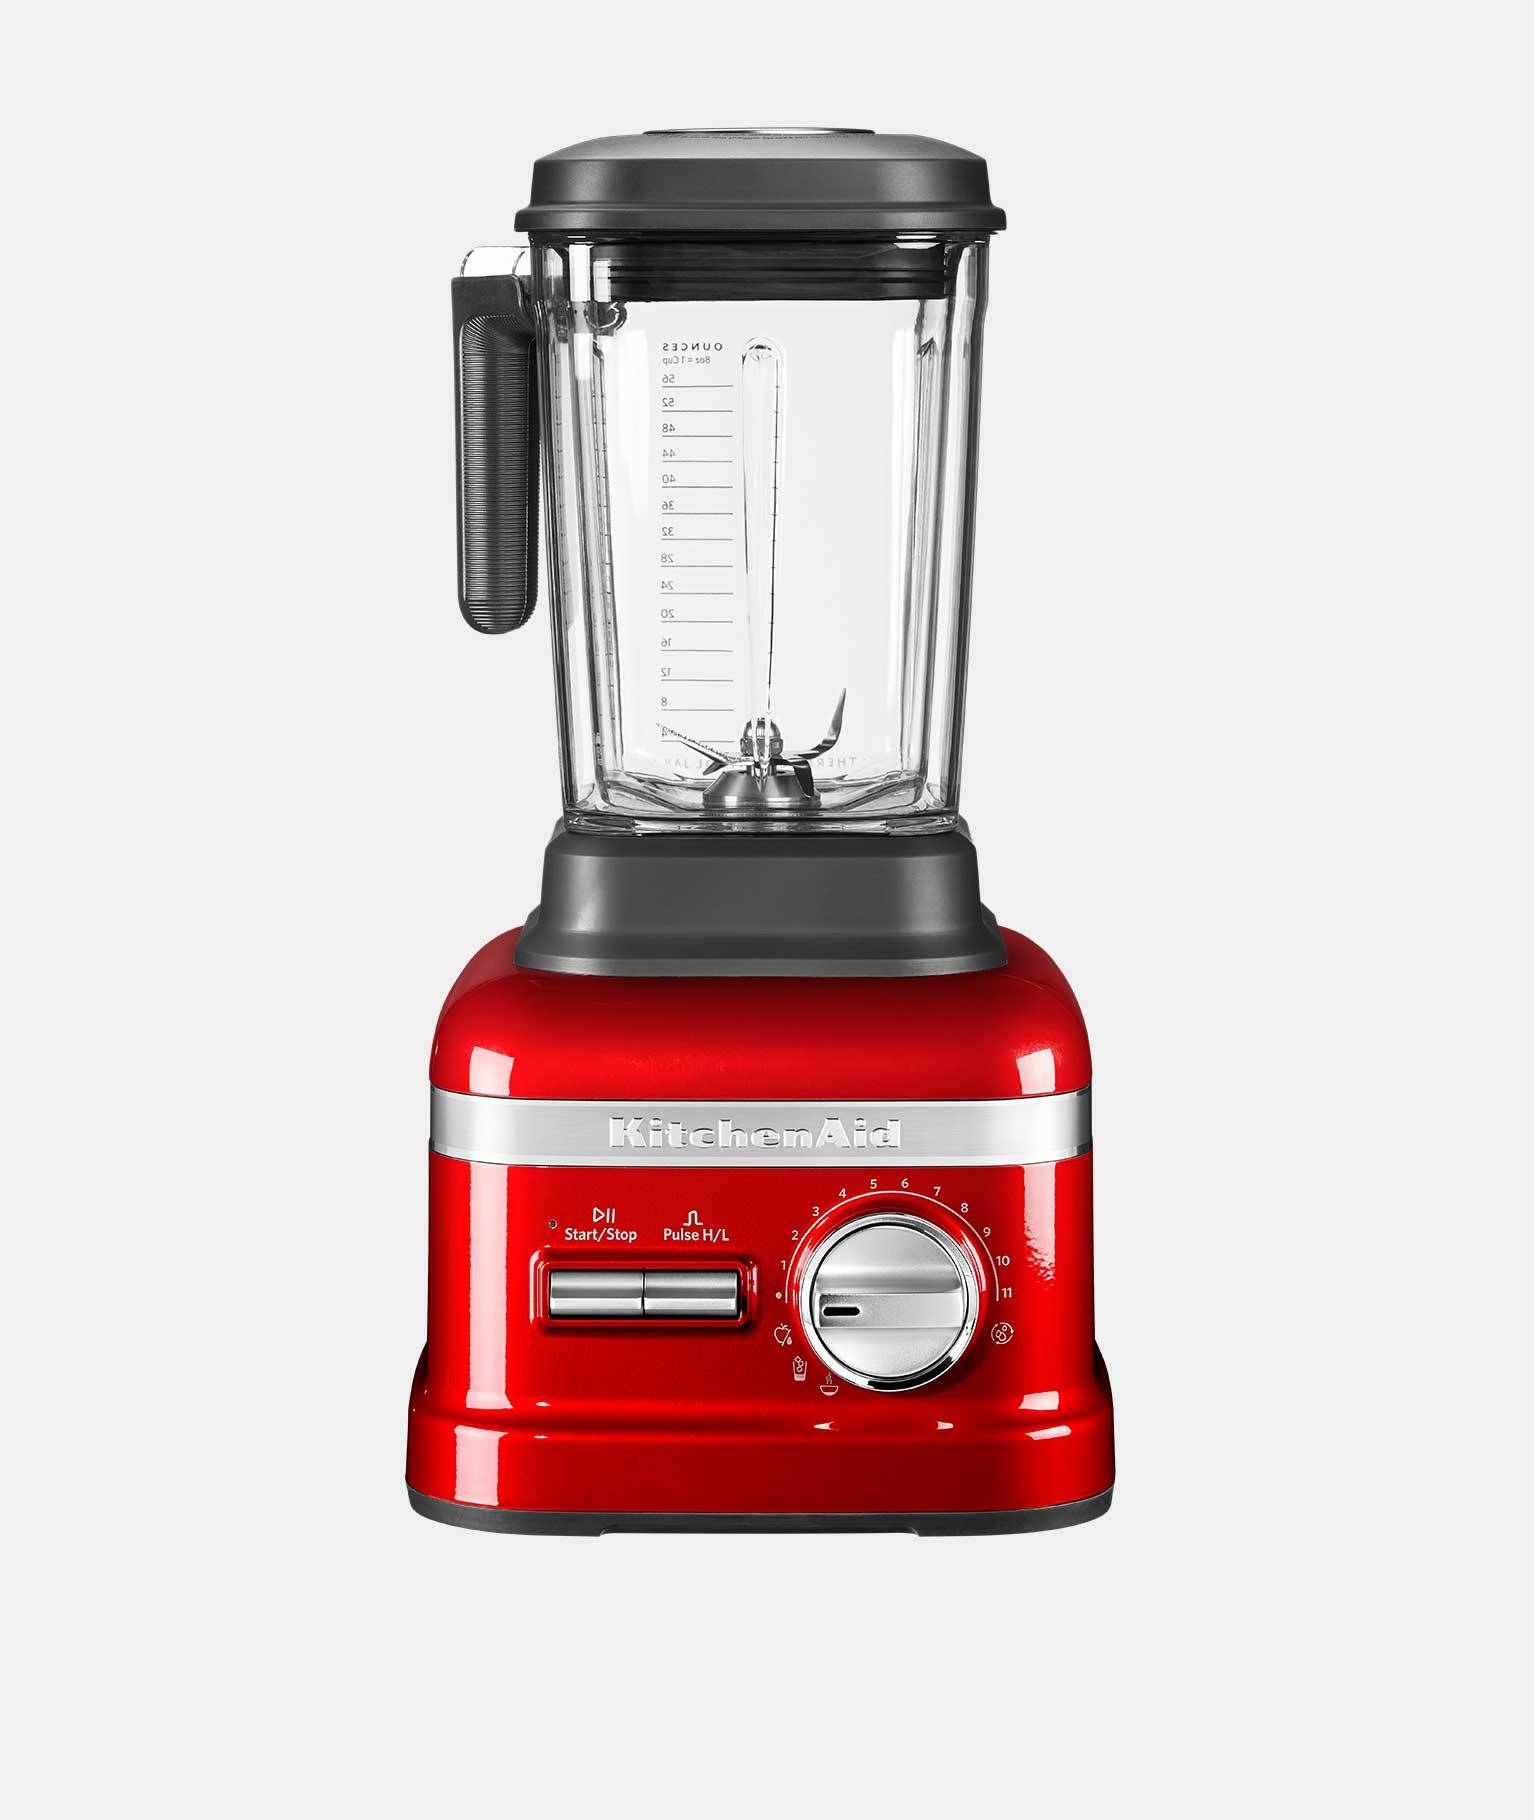 Kitchenaid Blender official kitchenaid site | premium kitchen appliances